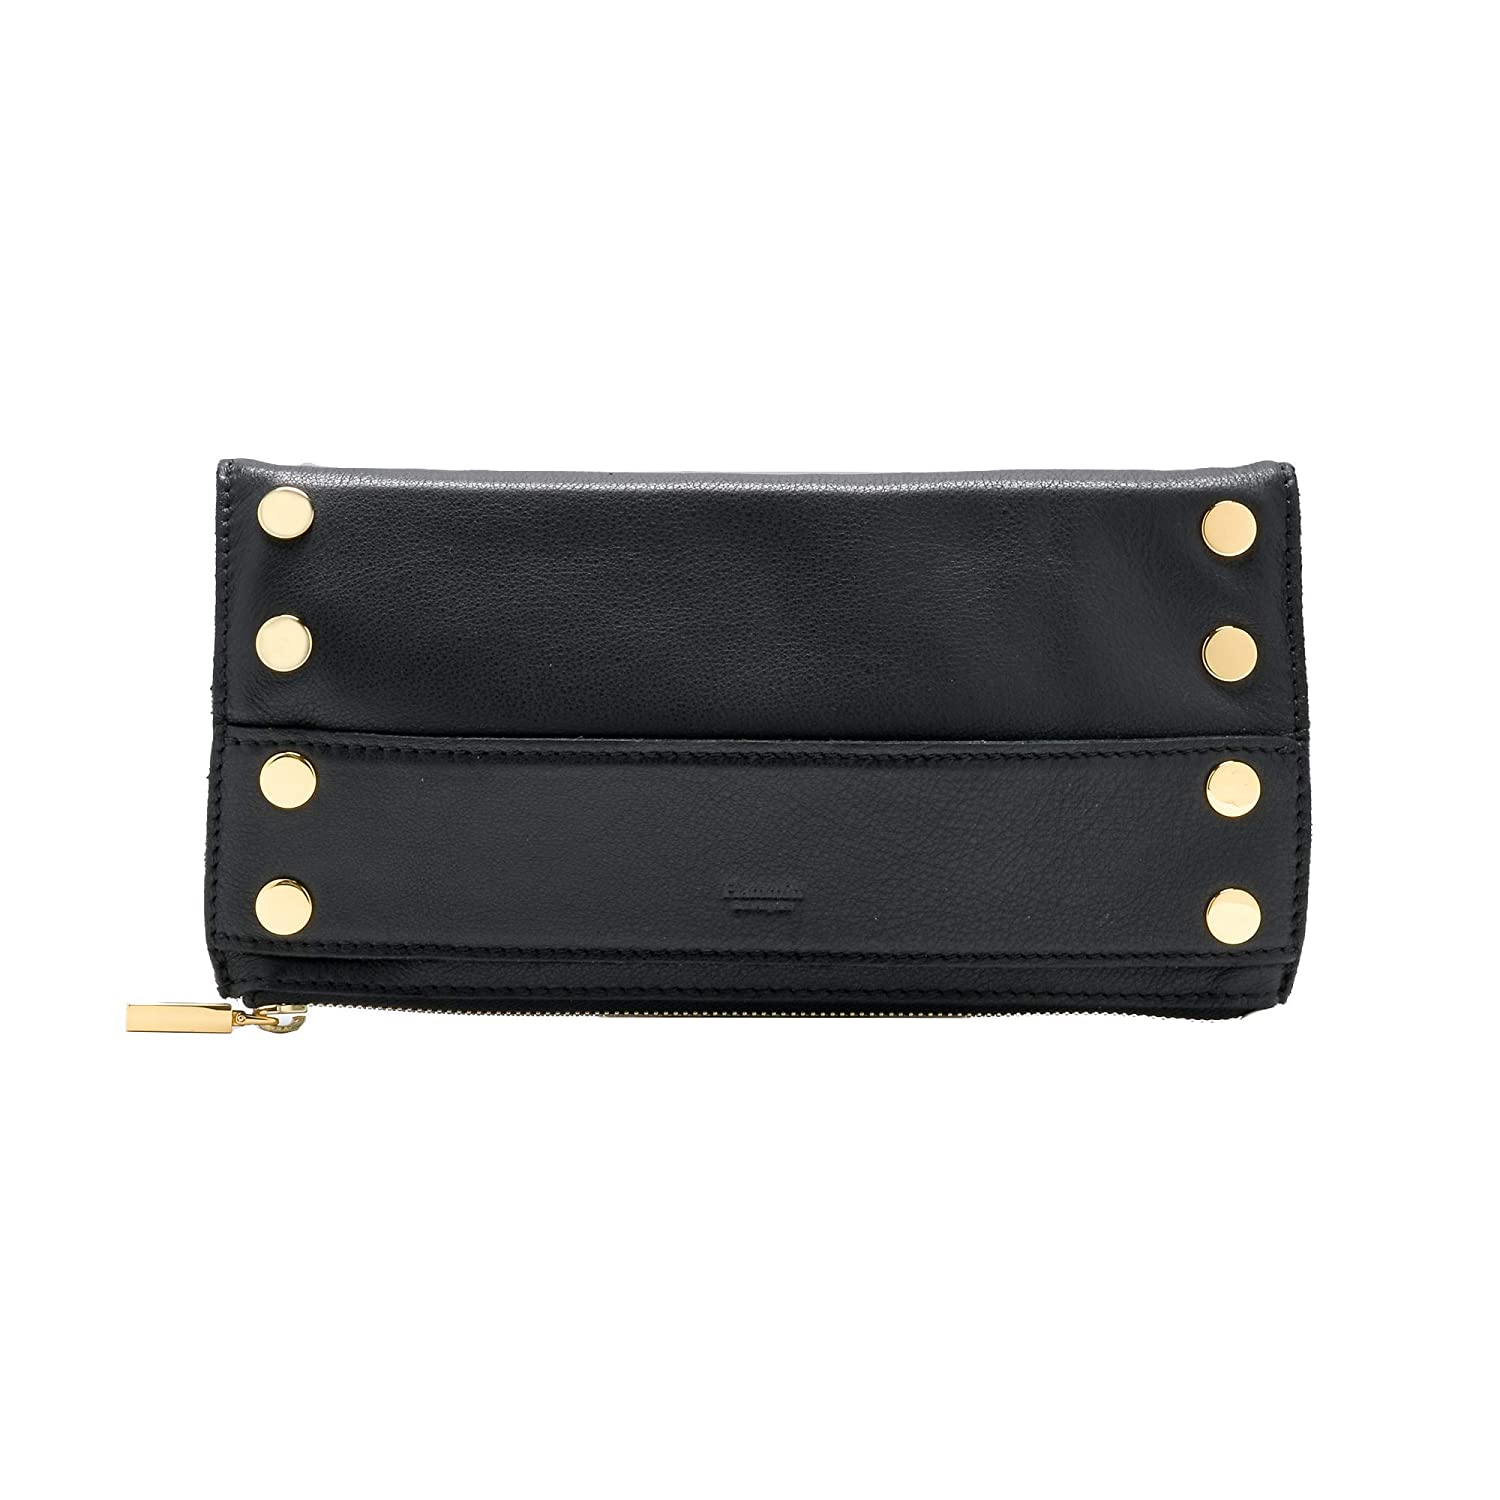 Hammitt Women's Ryan II Clutch